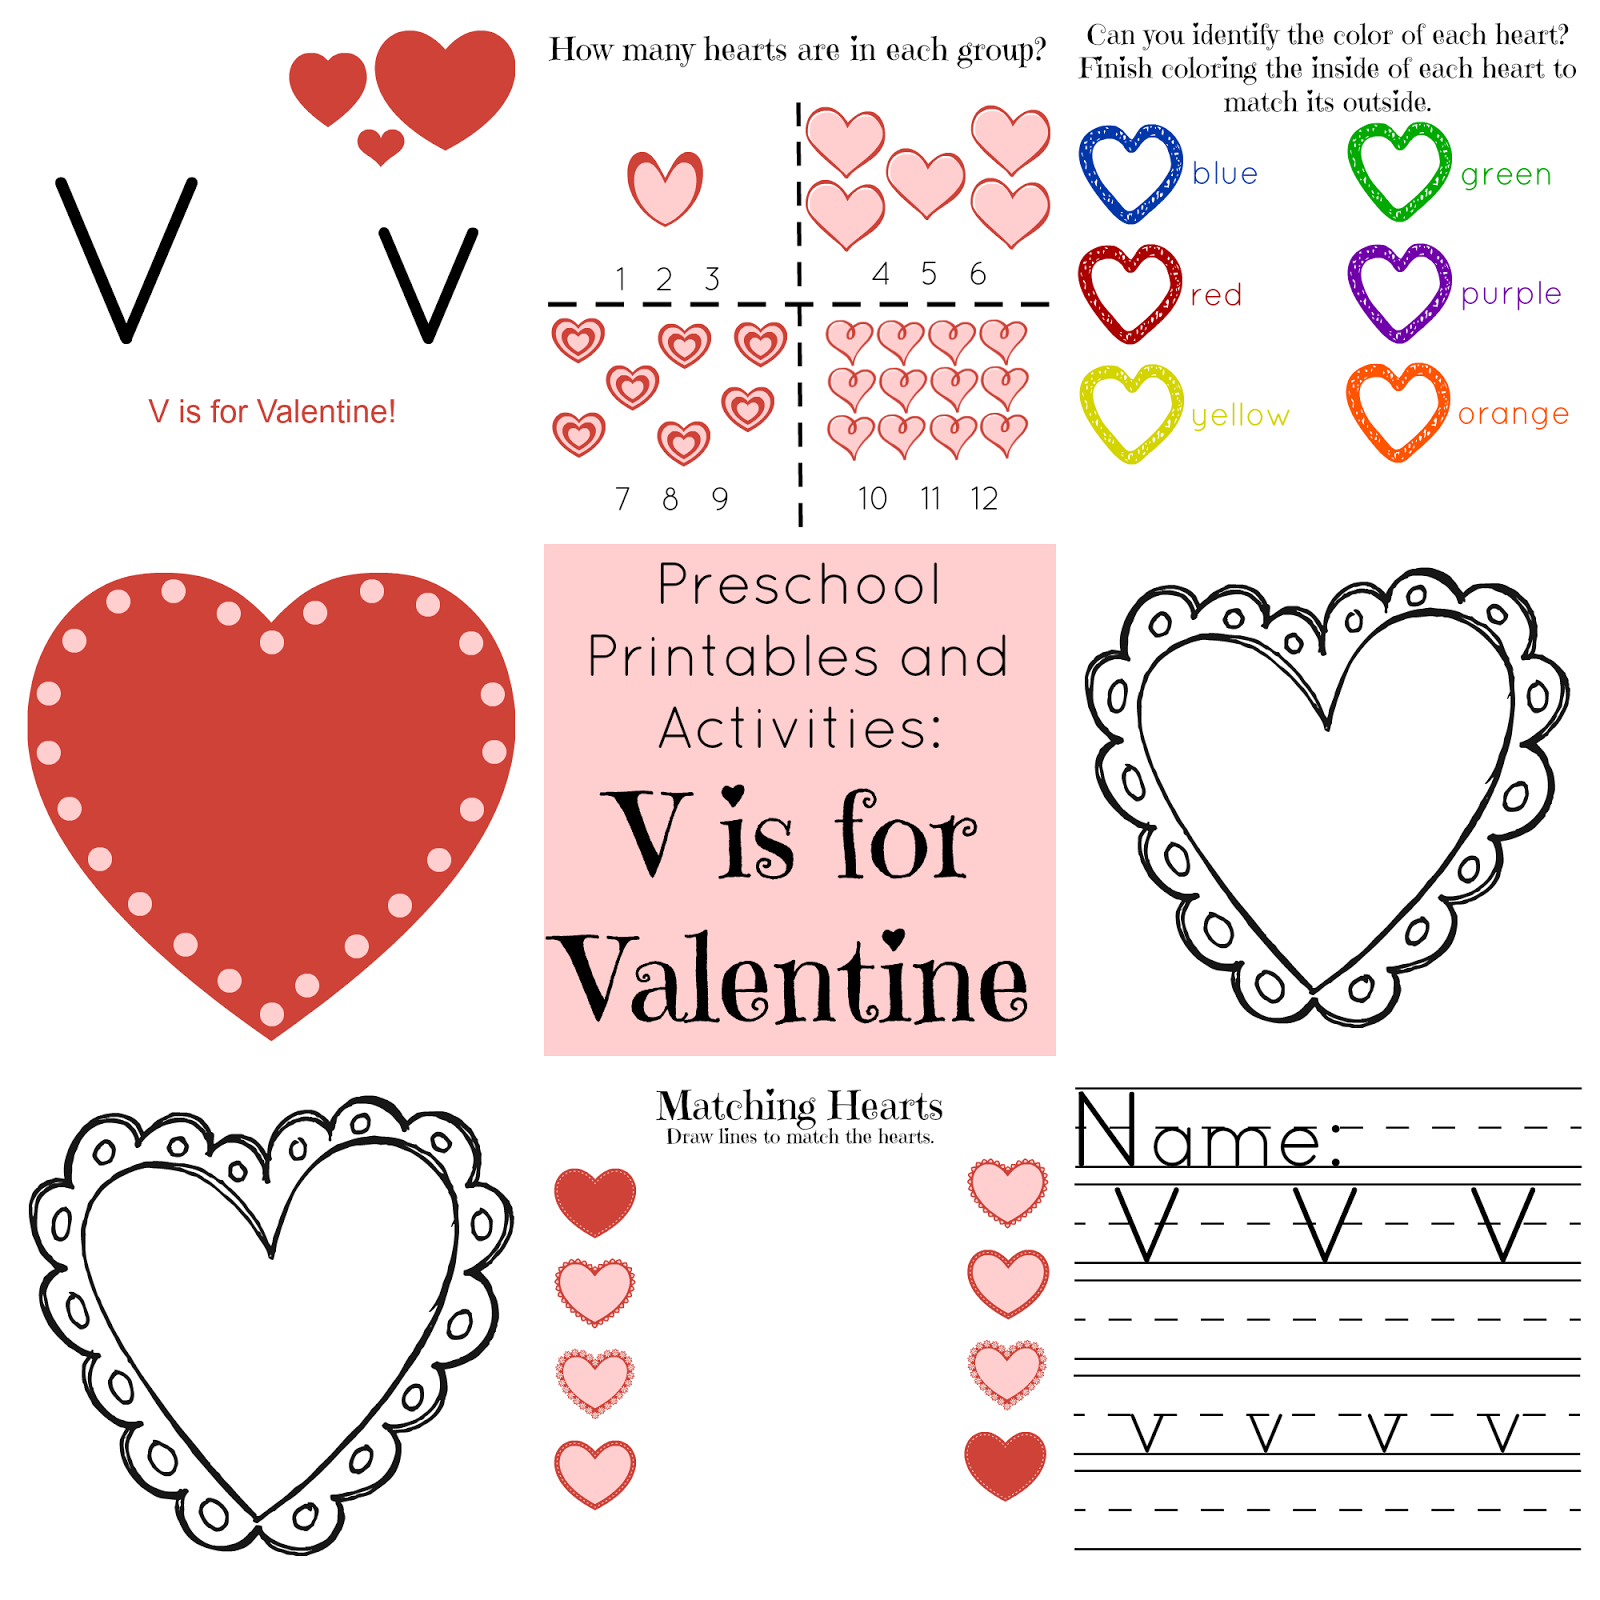 V Is For Valentine Preschool Printables And Activities